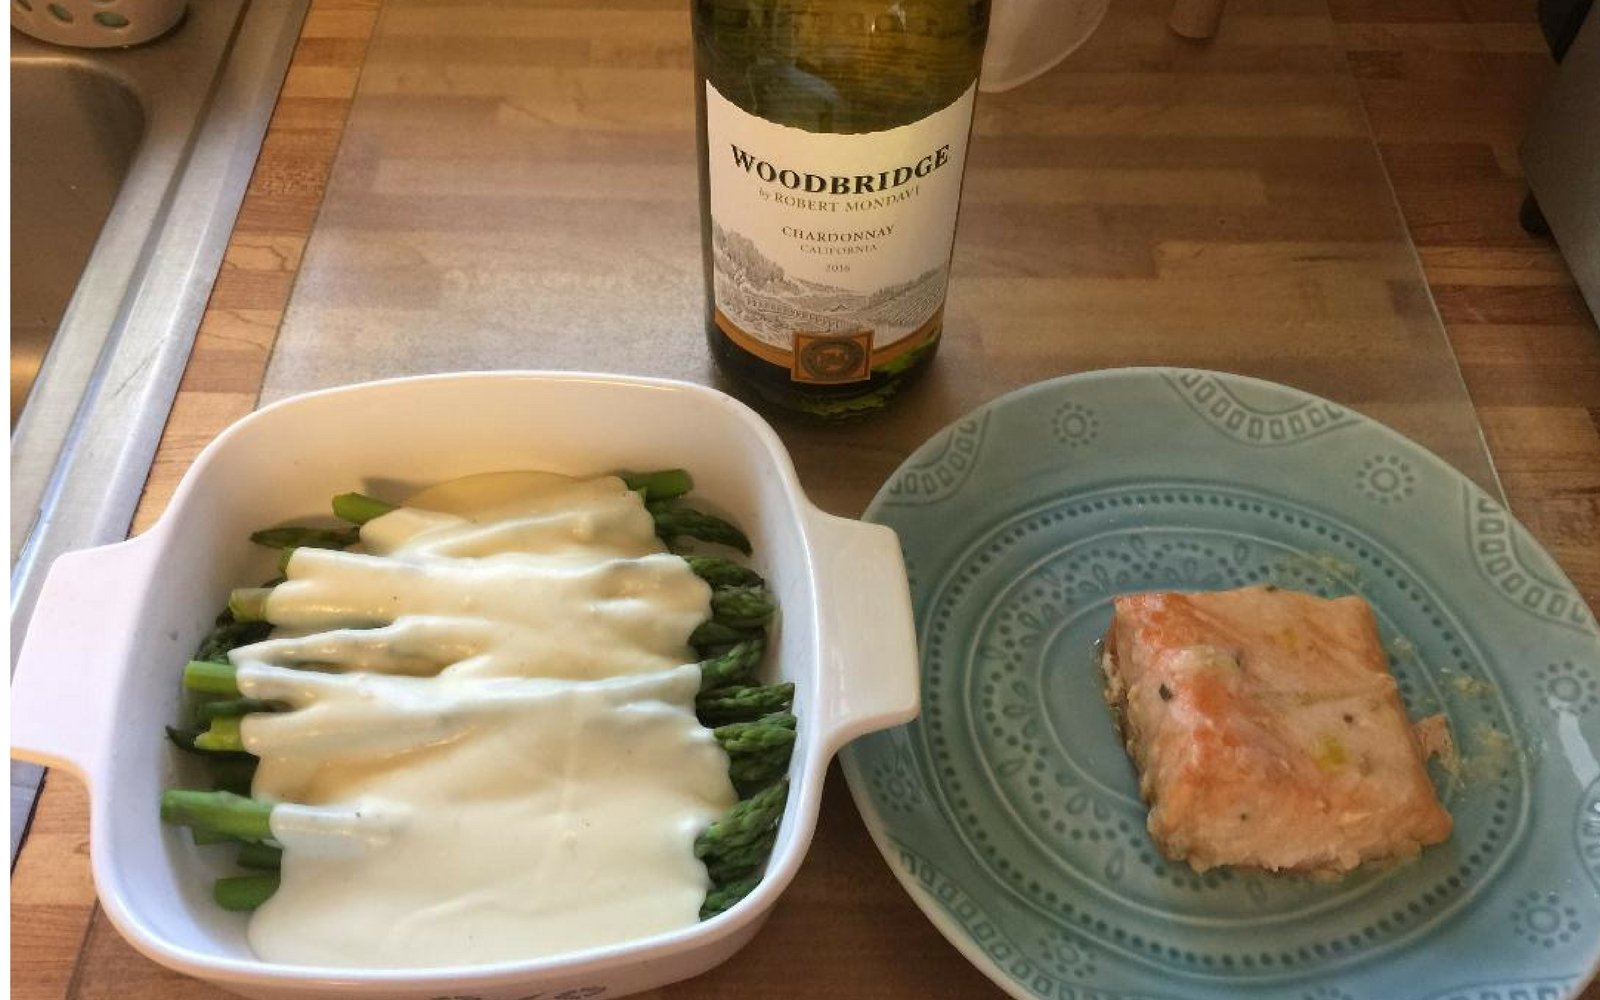 Asparagus with Rich and Creamy Cheese Sauce